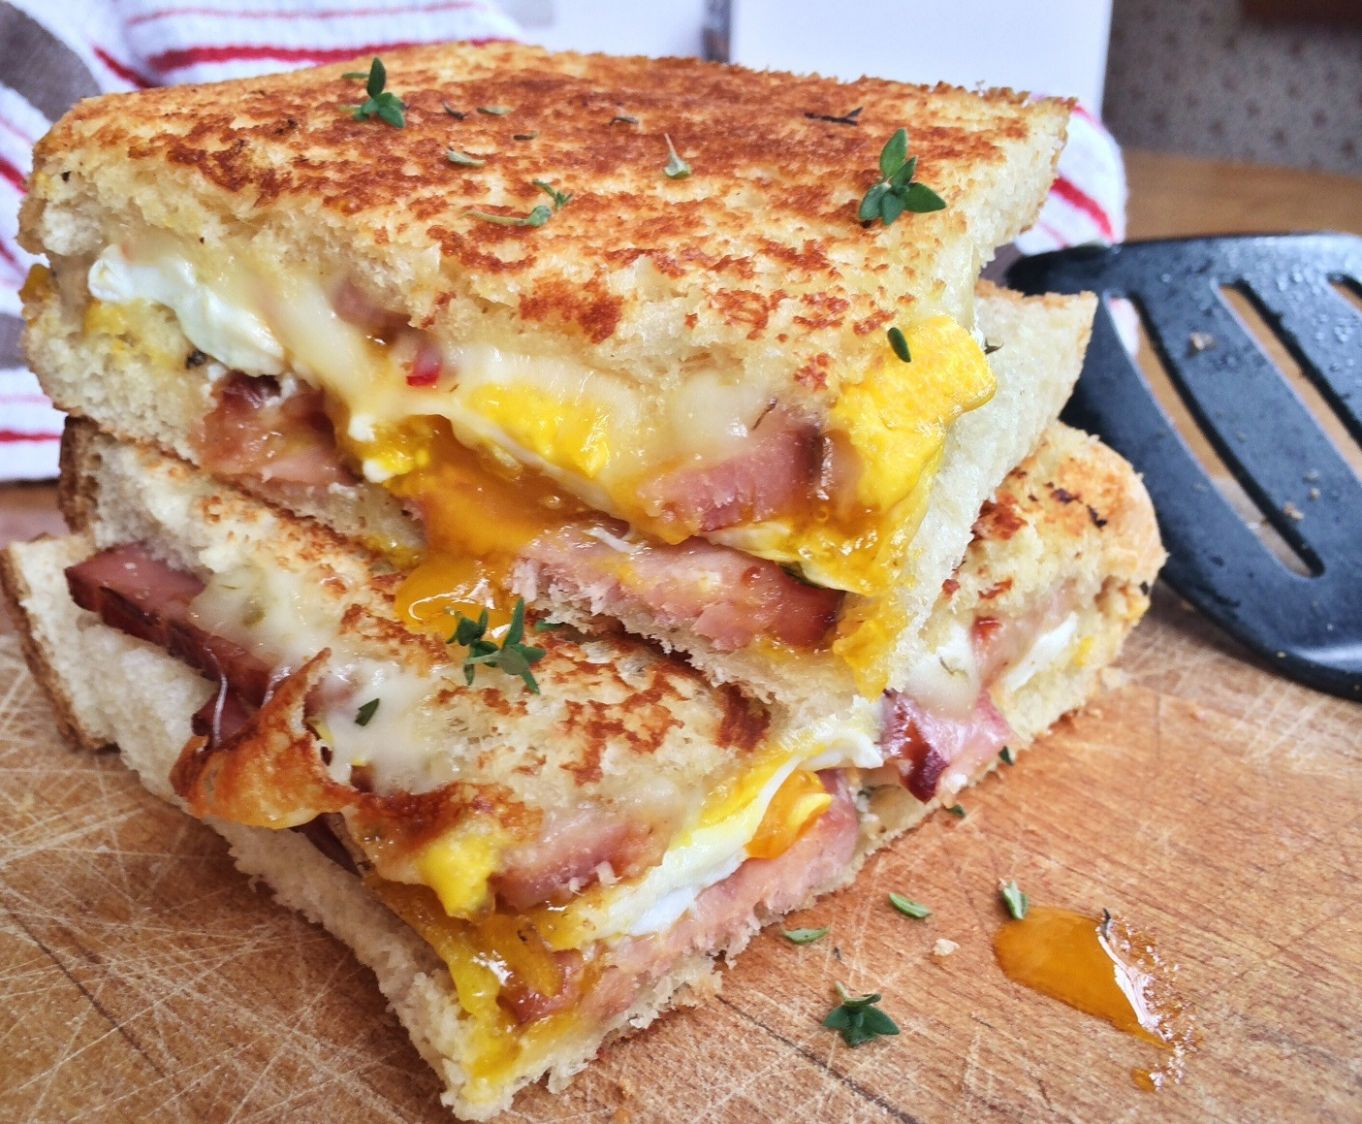 Grilled Pepper Jack Cheese Sandwich with Egg and Ham - Sandwich Recipes With Pepper Jack Cheese